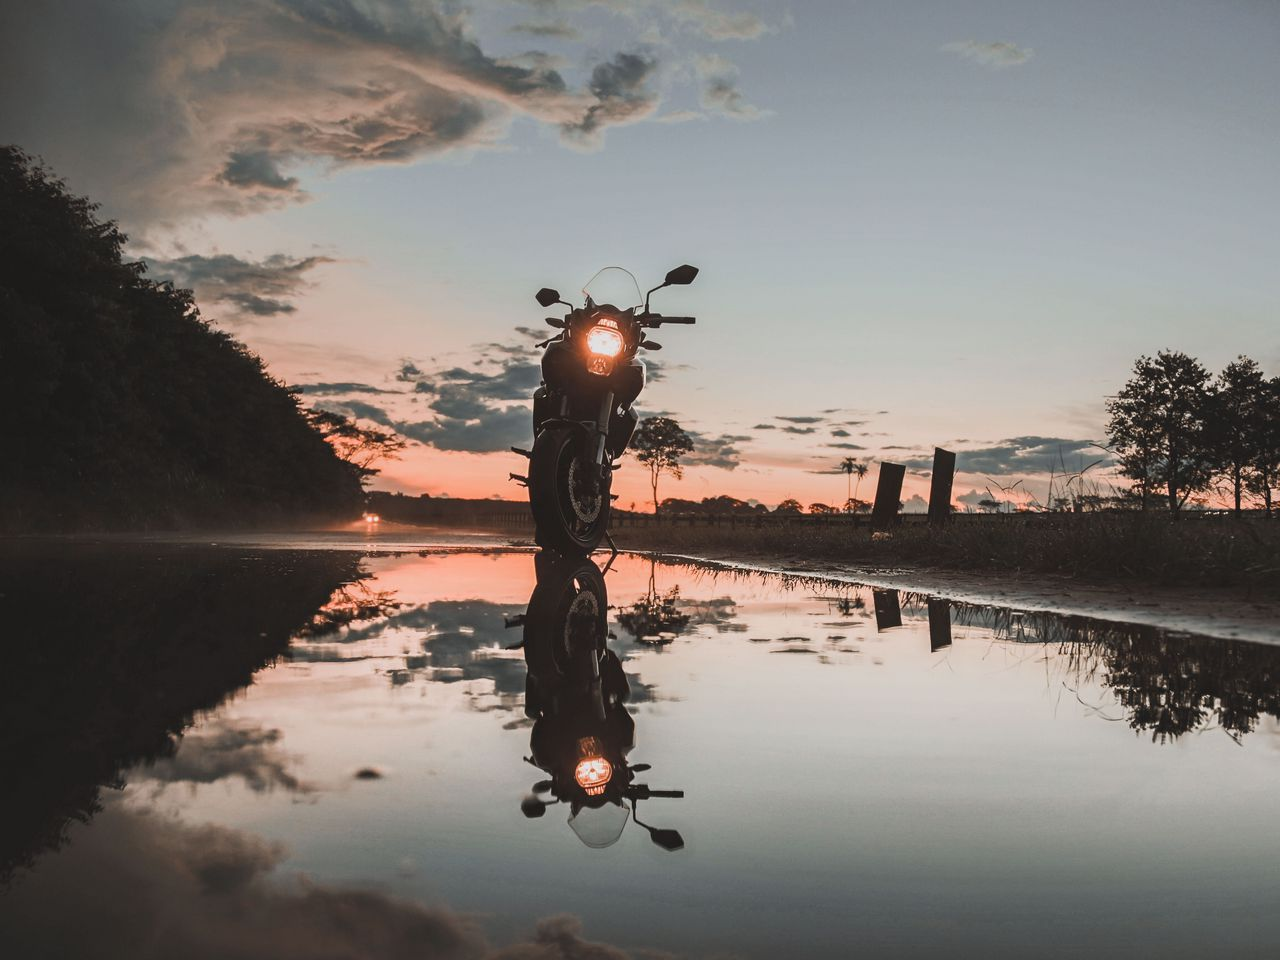 1280x960 Wallpaper motorcycle, sunset, reflection, water, sky